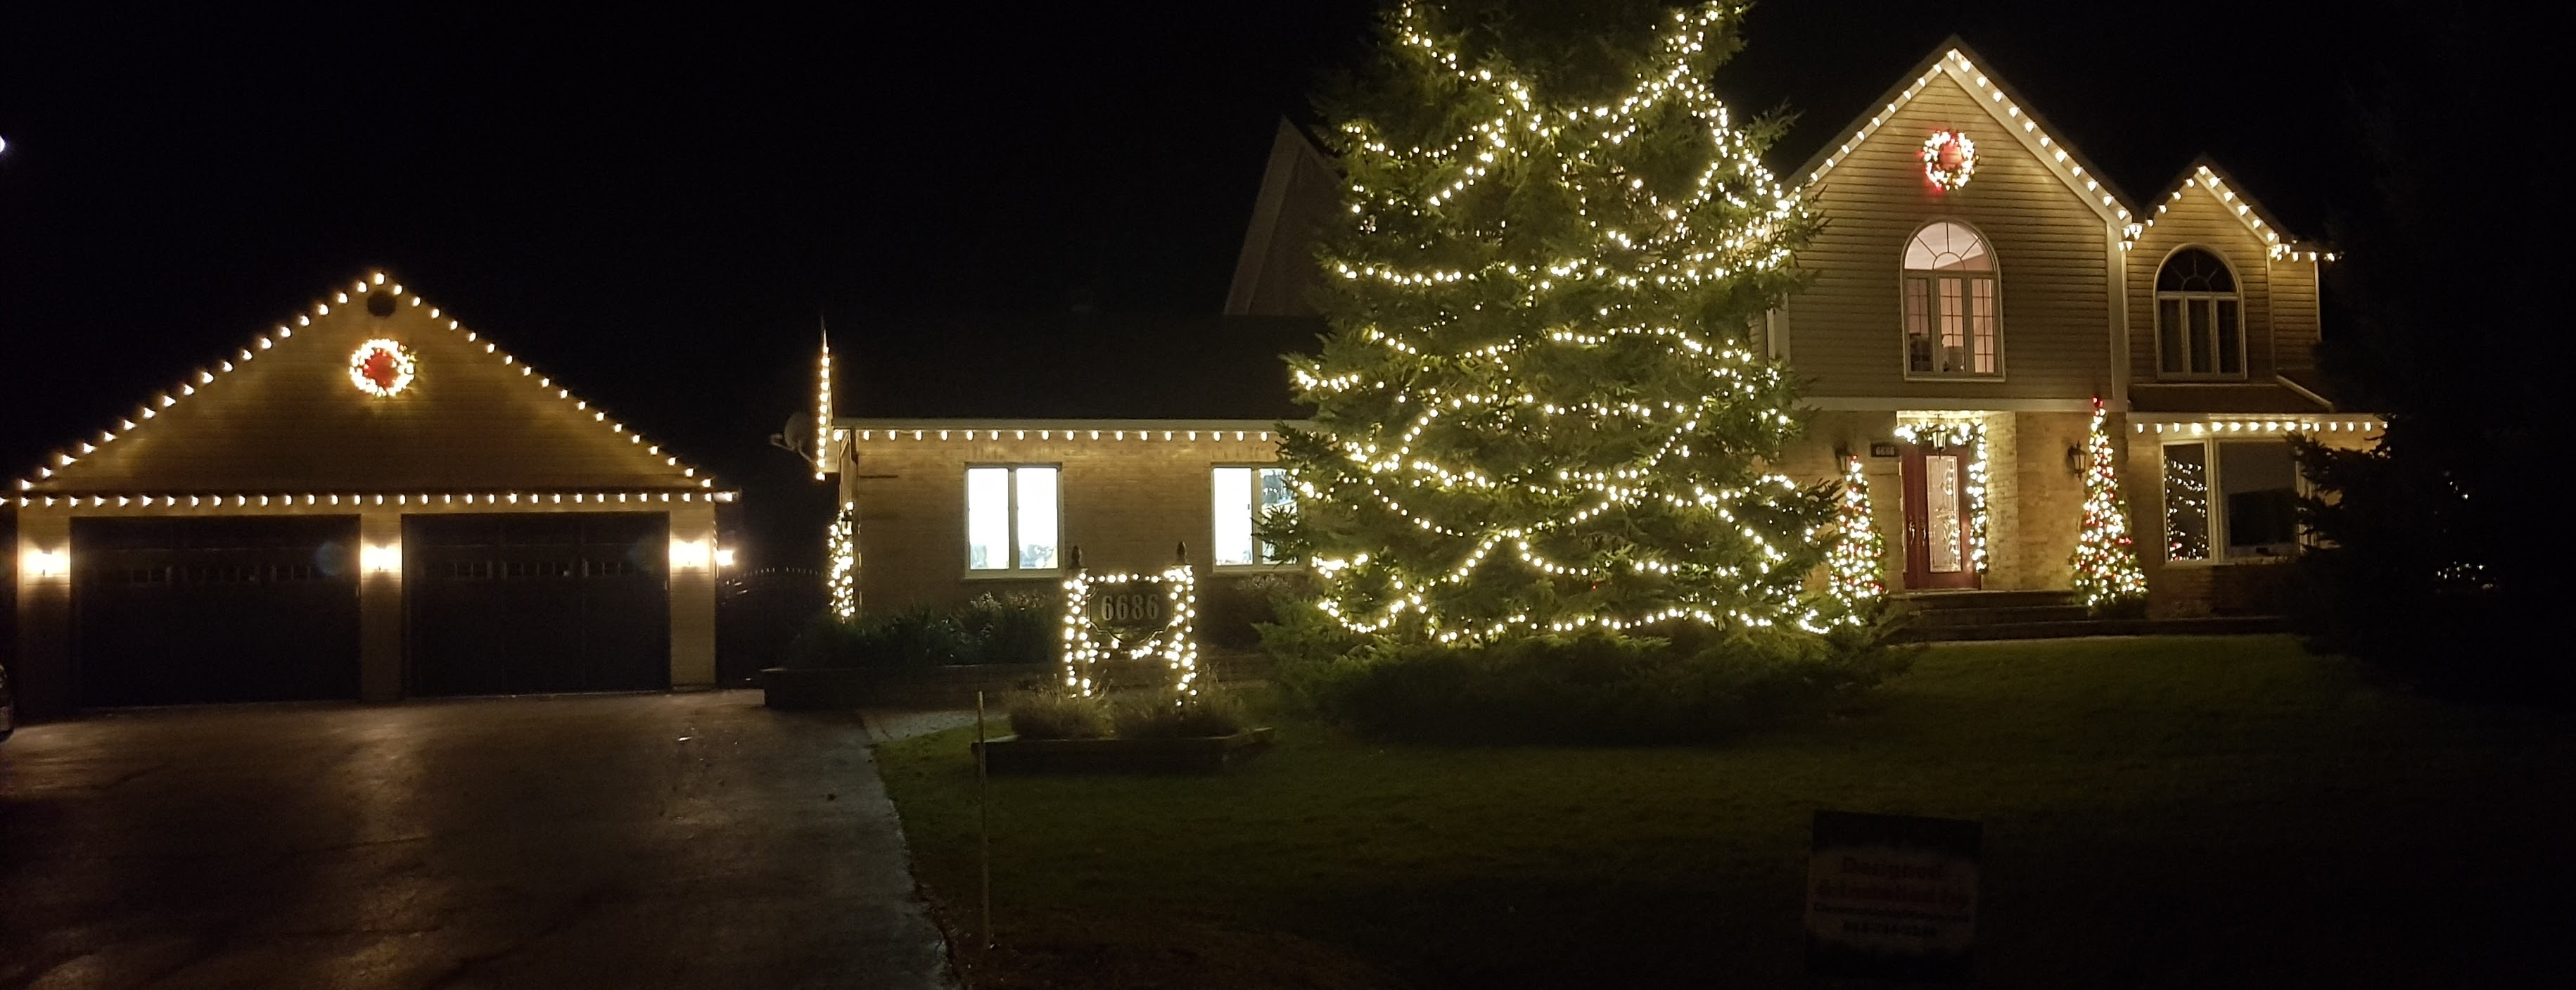 christmas_lights_roof_tree_exterior_residential